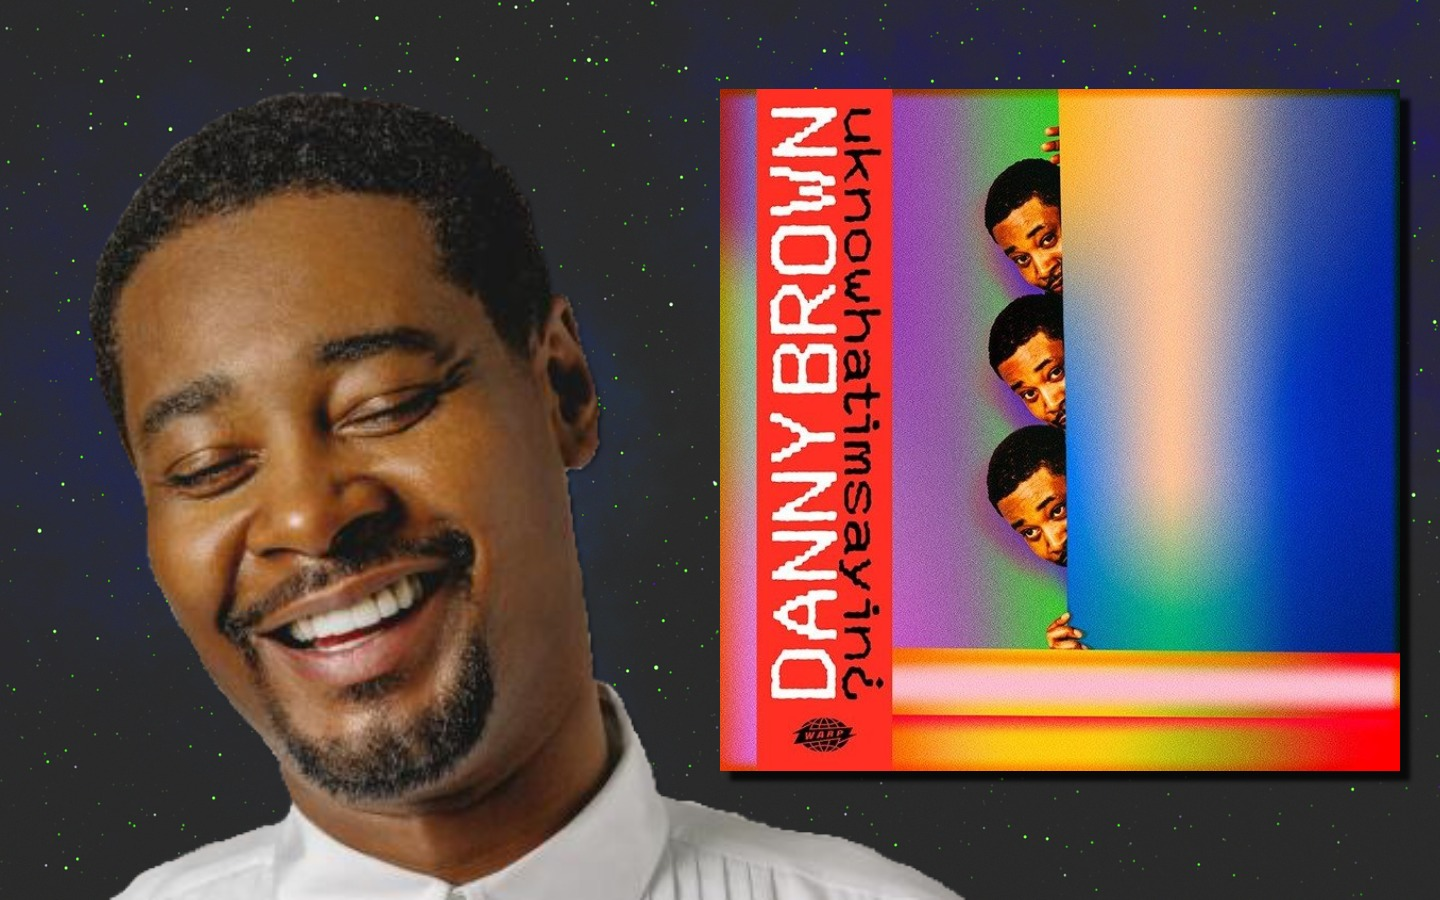 Danny Brown released the colorful, synth-heavy